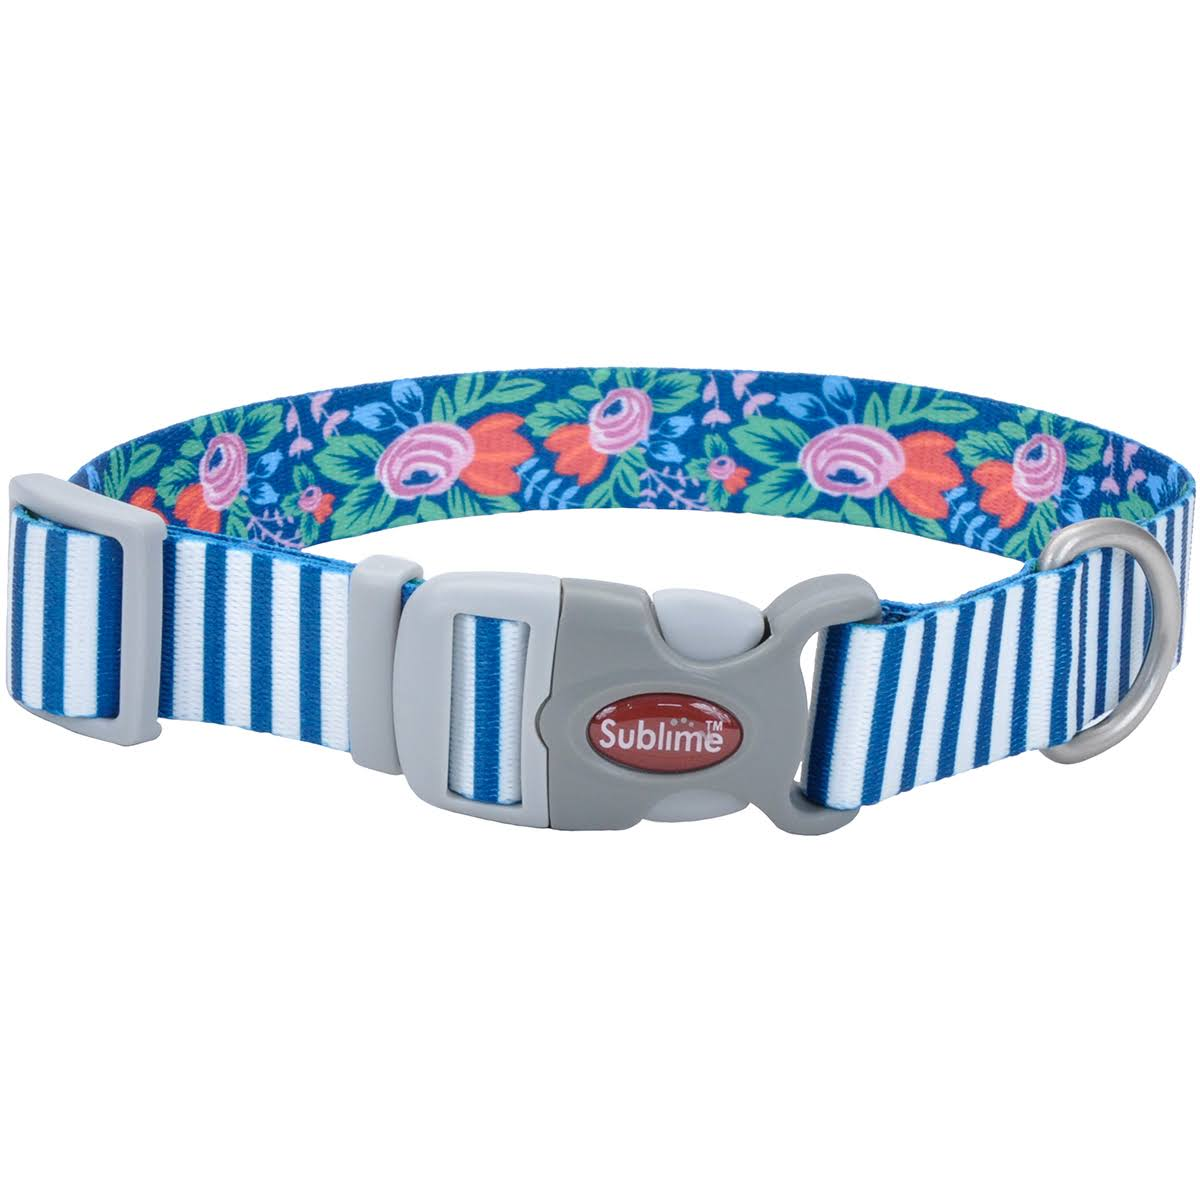 "Coastal Sublime Dog Collar - Teal, Stripe, Flower, 3/4"" X 12"""